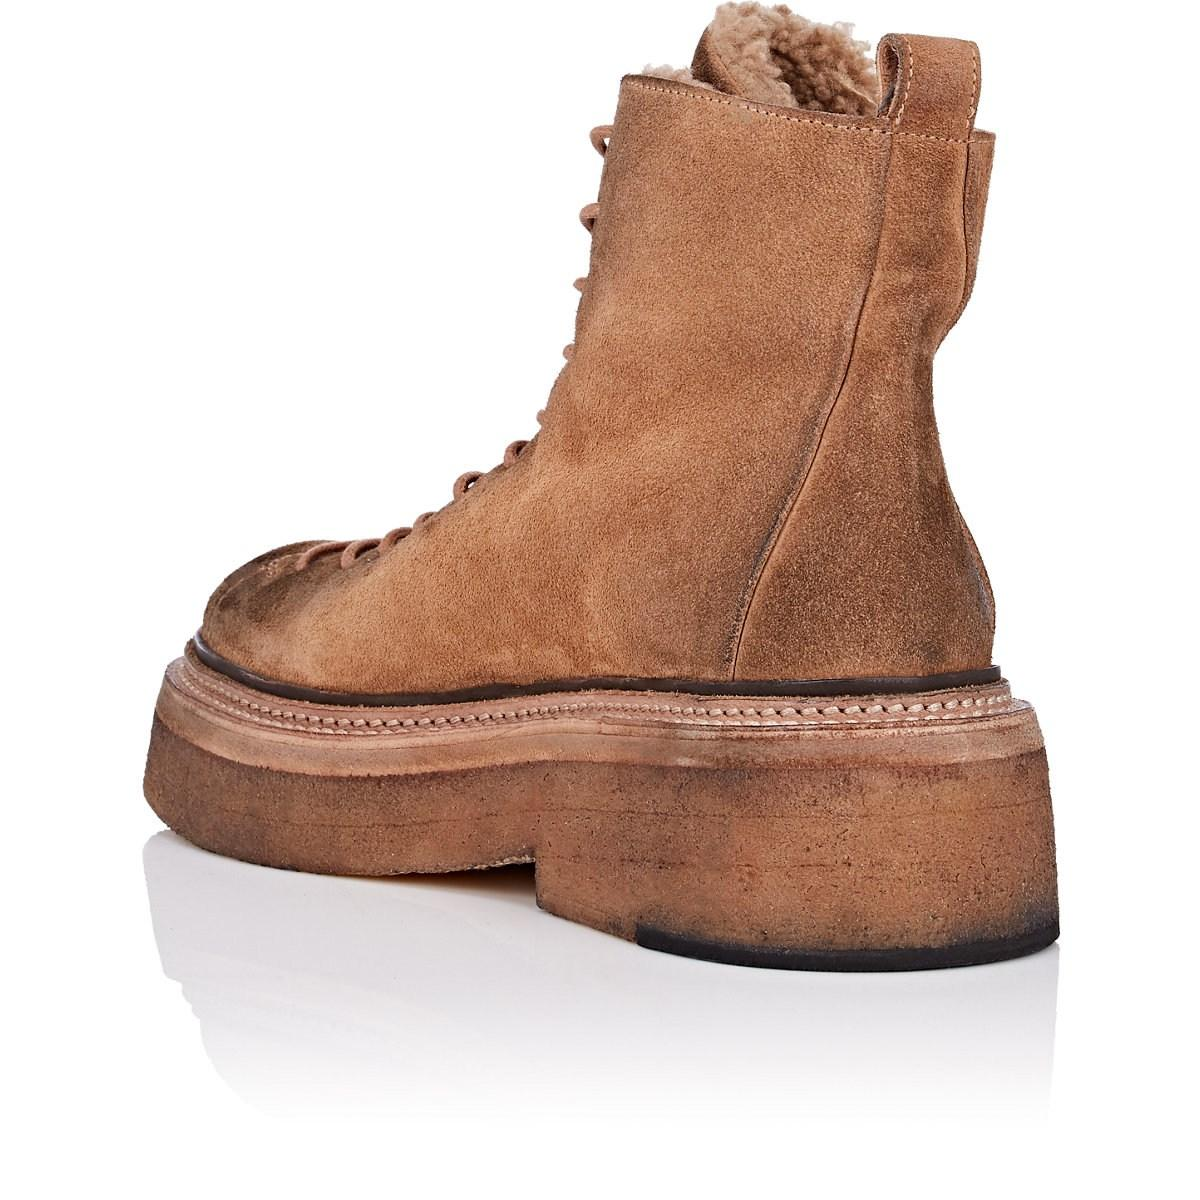 870e06c724a Marsèll Shearling-lined Suede Hiker Boots in Natural - Lyst